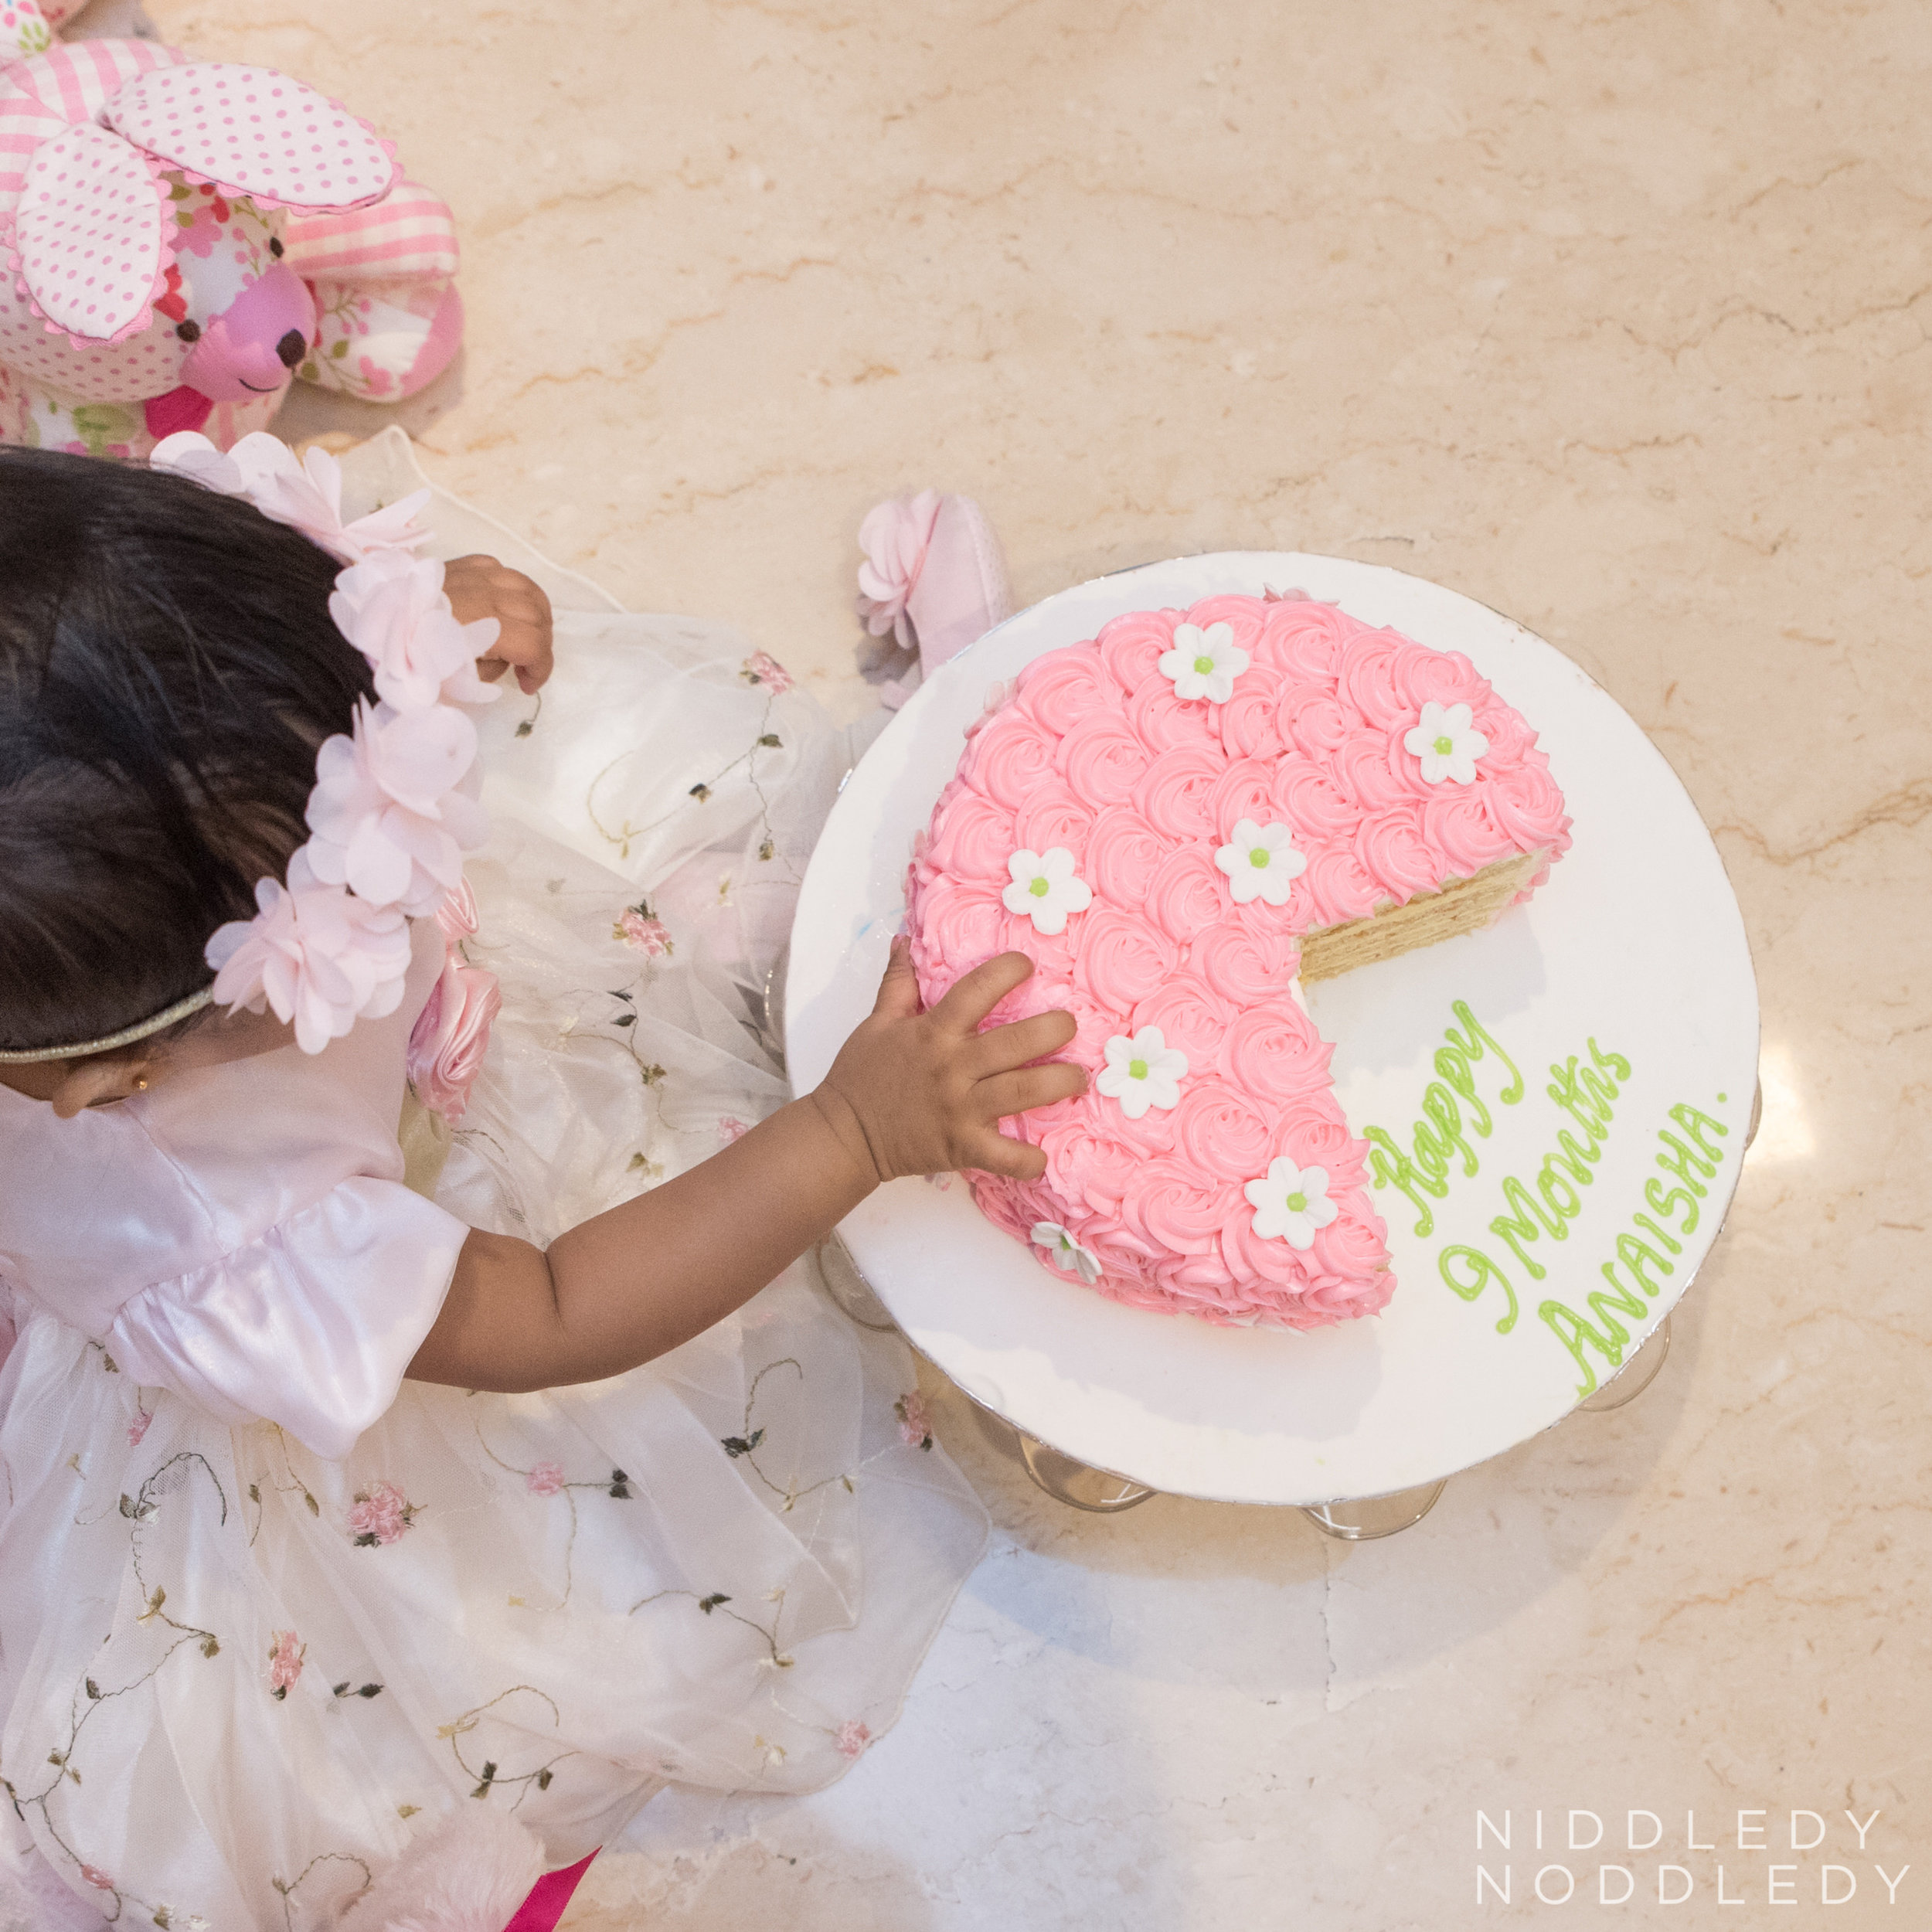 Anaisha Baby Photoshoot ❤ NiddledyNoddledy.com ~ Bumps to Babies Photography, Kolkata - 116.jpg